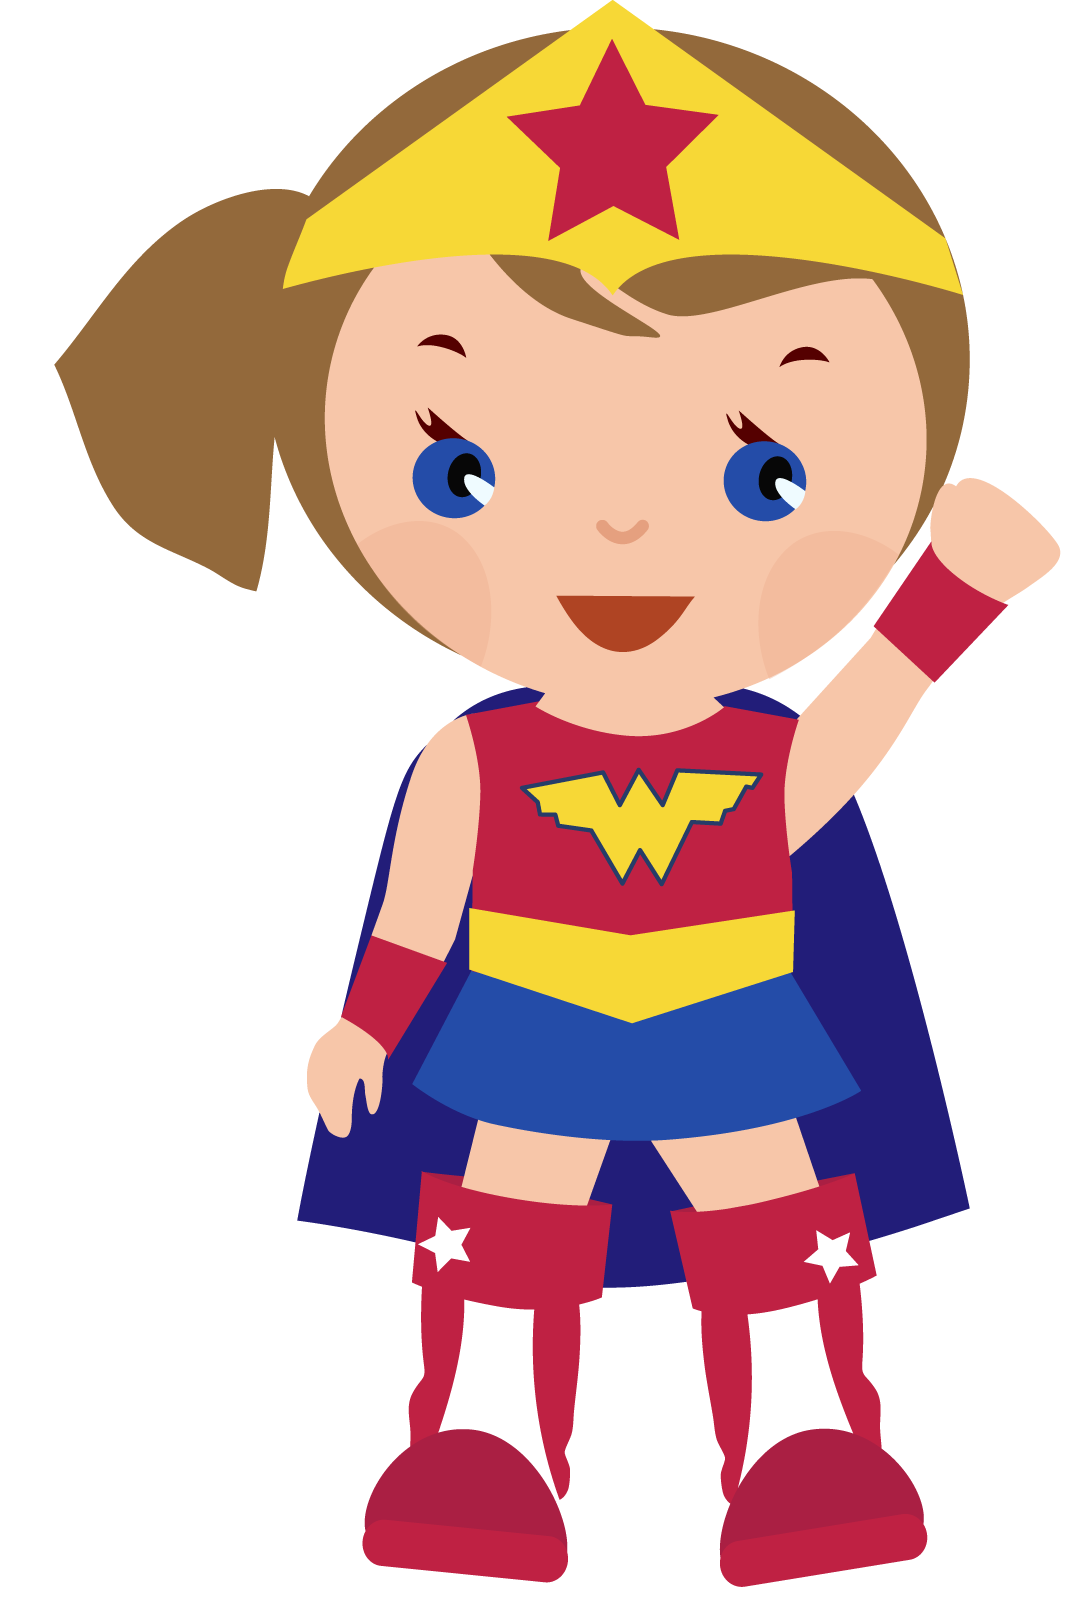 free superhero clipart | Fonts/Clipart freebies | Pinterest ... vector royalty free library